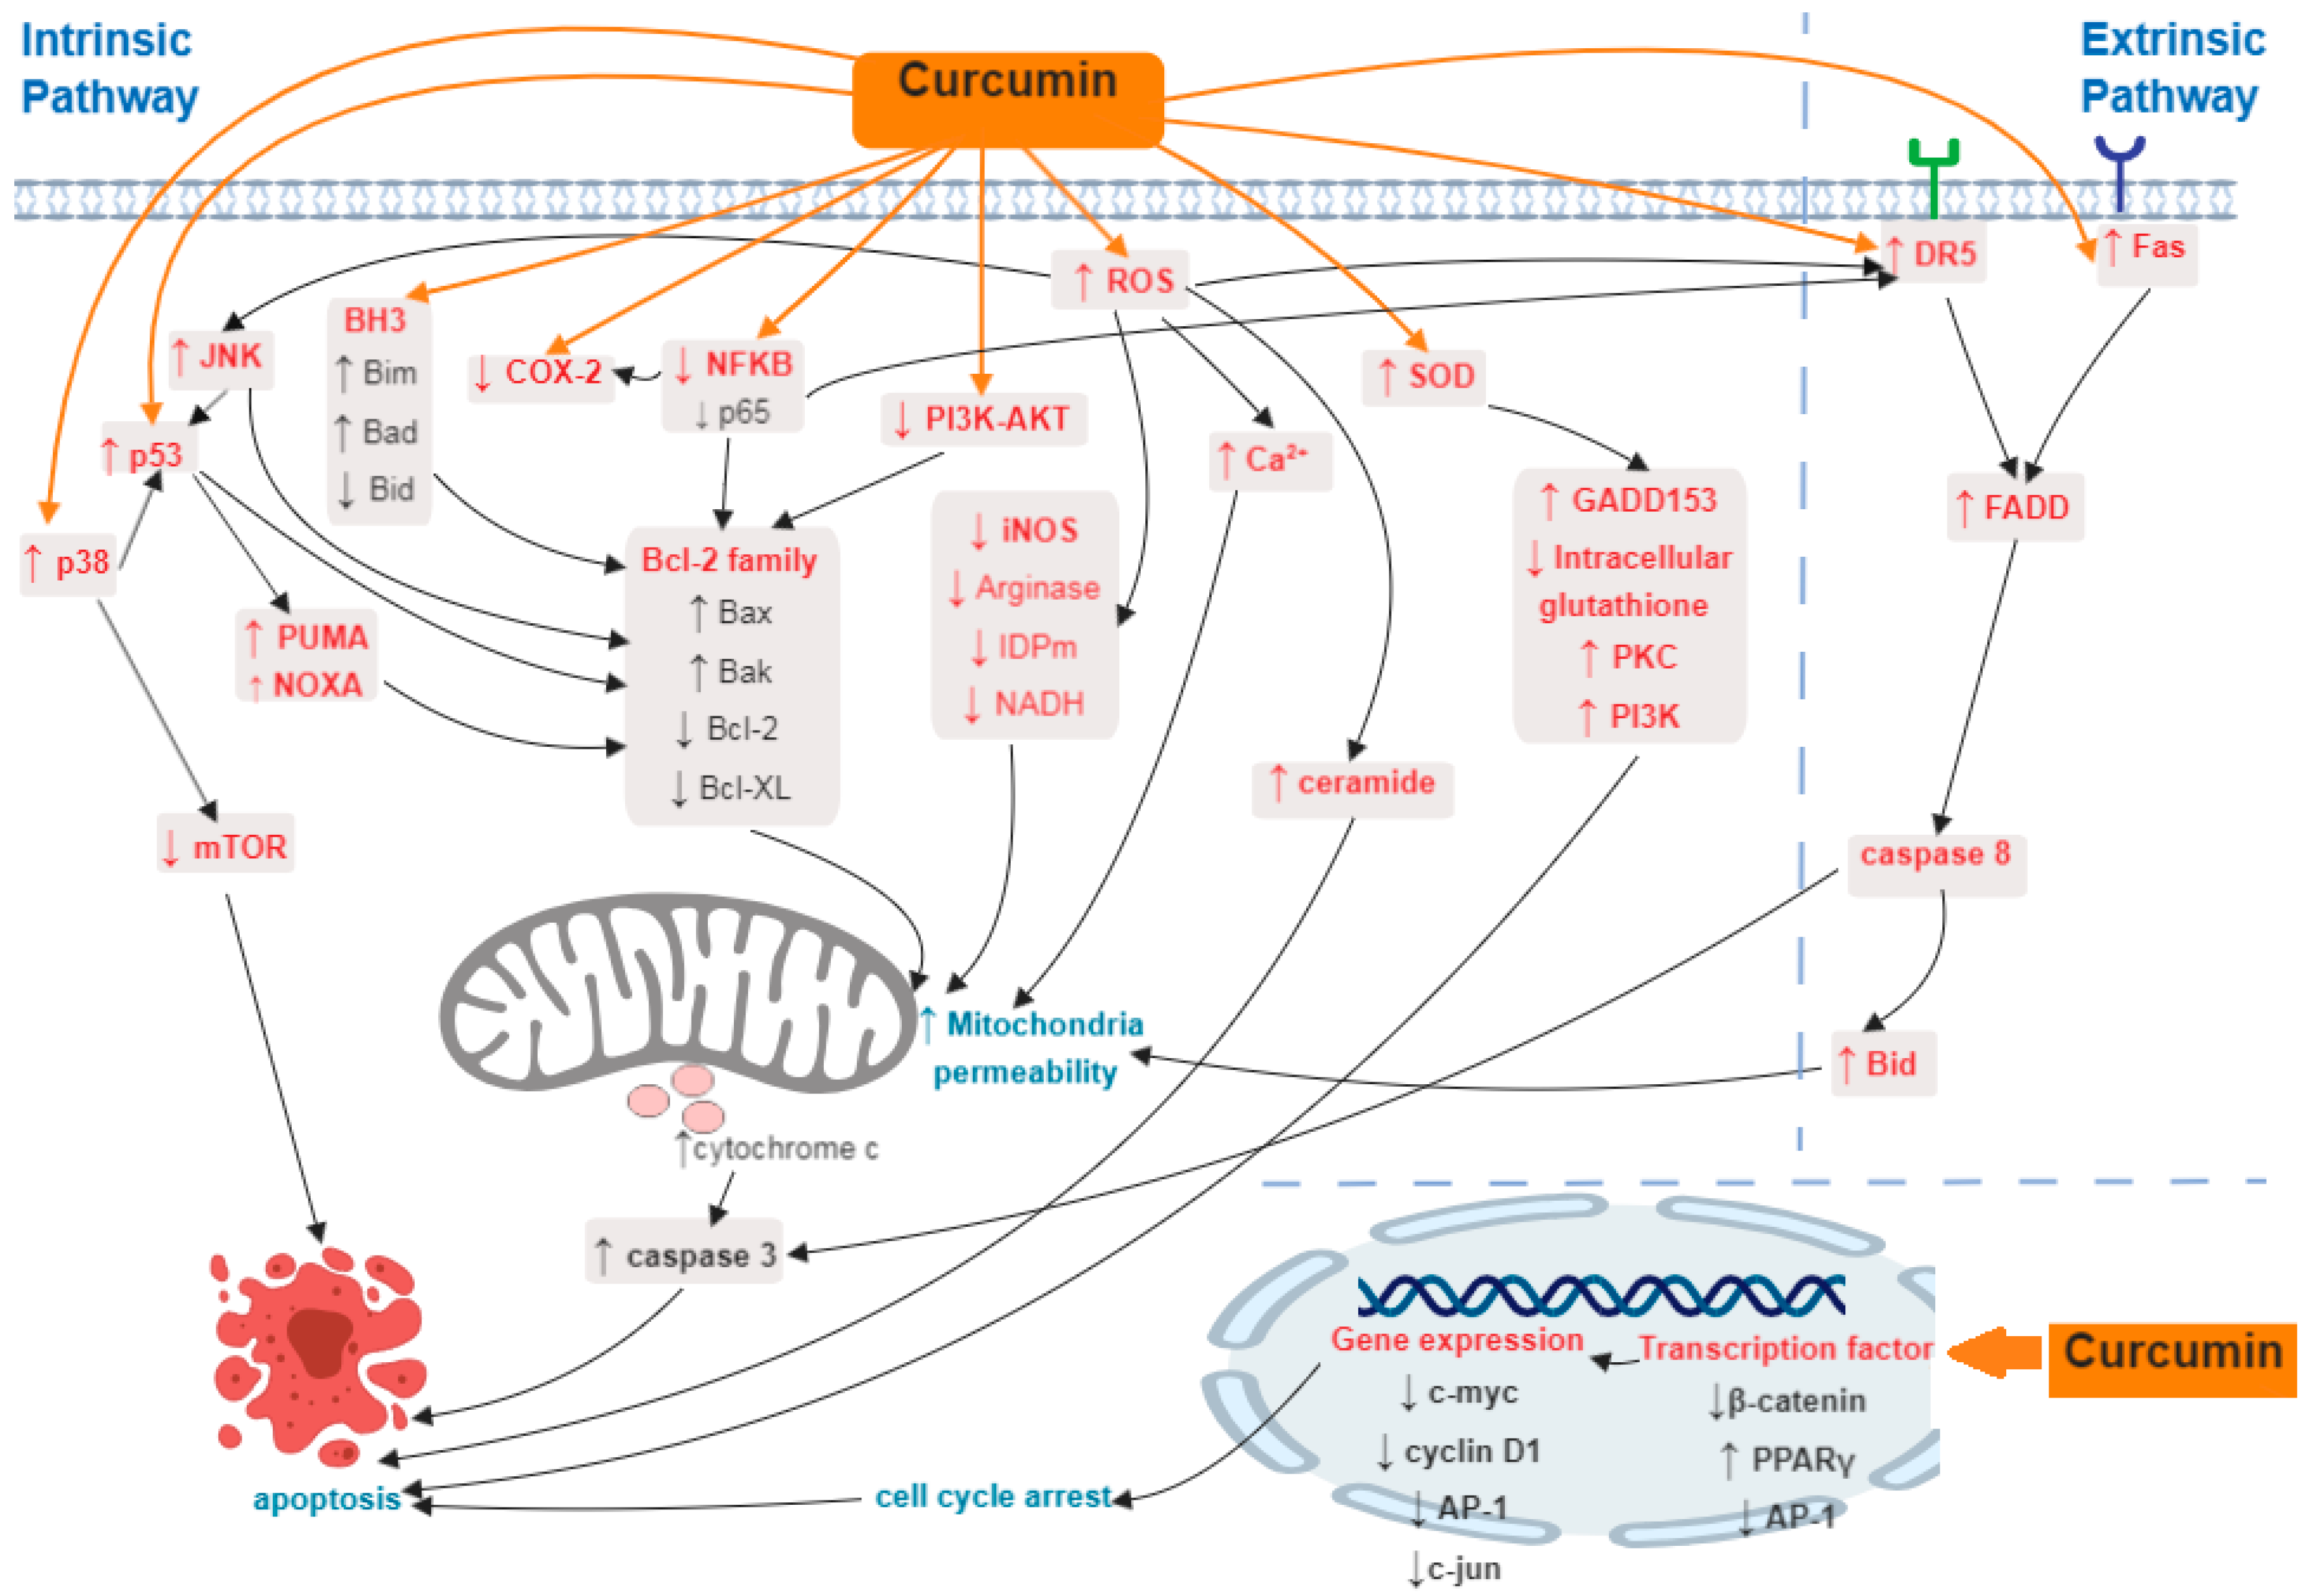 Ijms Free Full Text Mechanism Of Apoptosis Induced By Curcumin In Colorectal Cancer Html